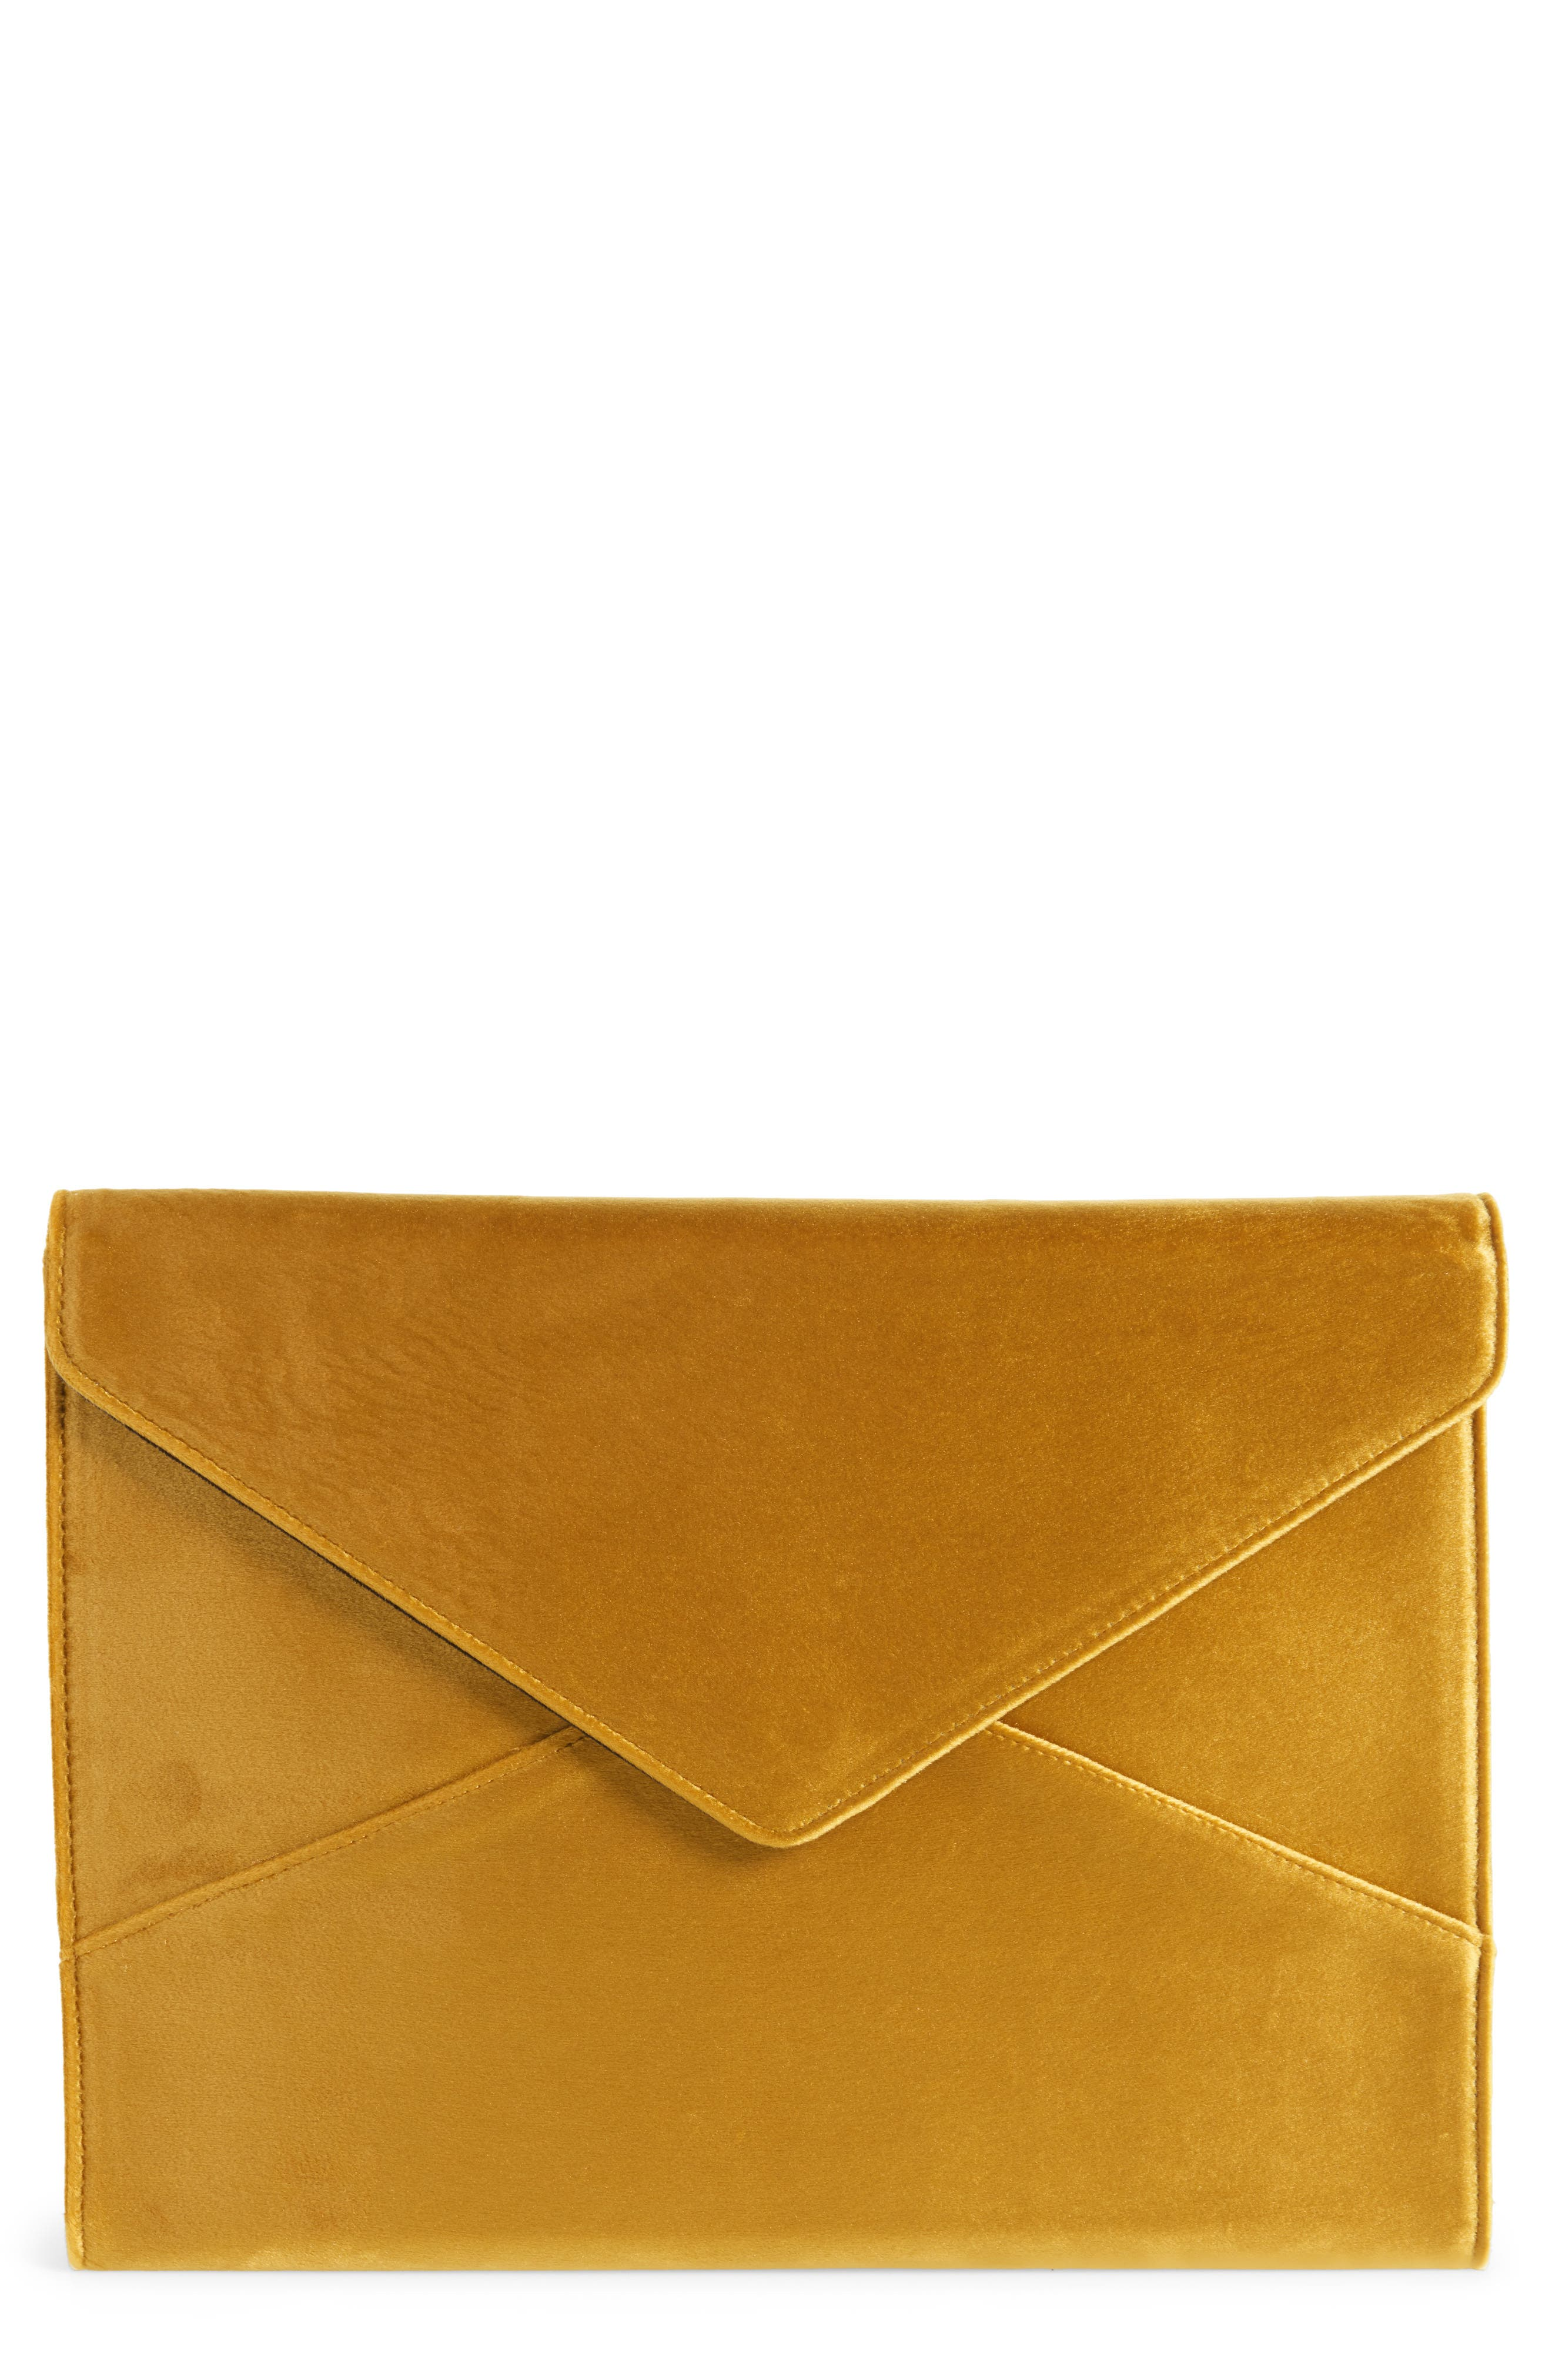 Canary Velvet Laptop Clutch,                             Main thumbnail 1, color,                             710